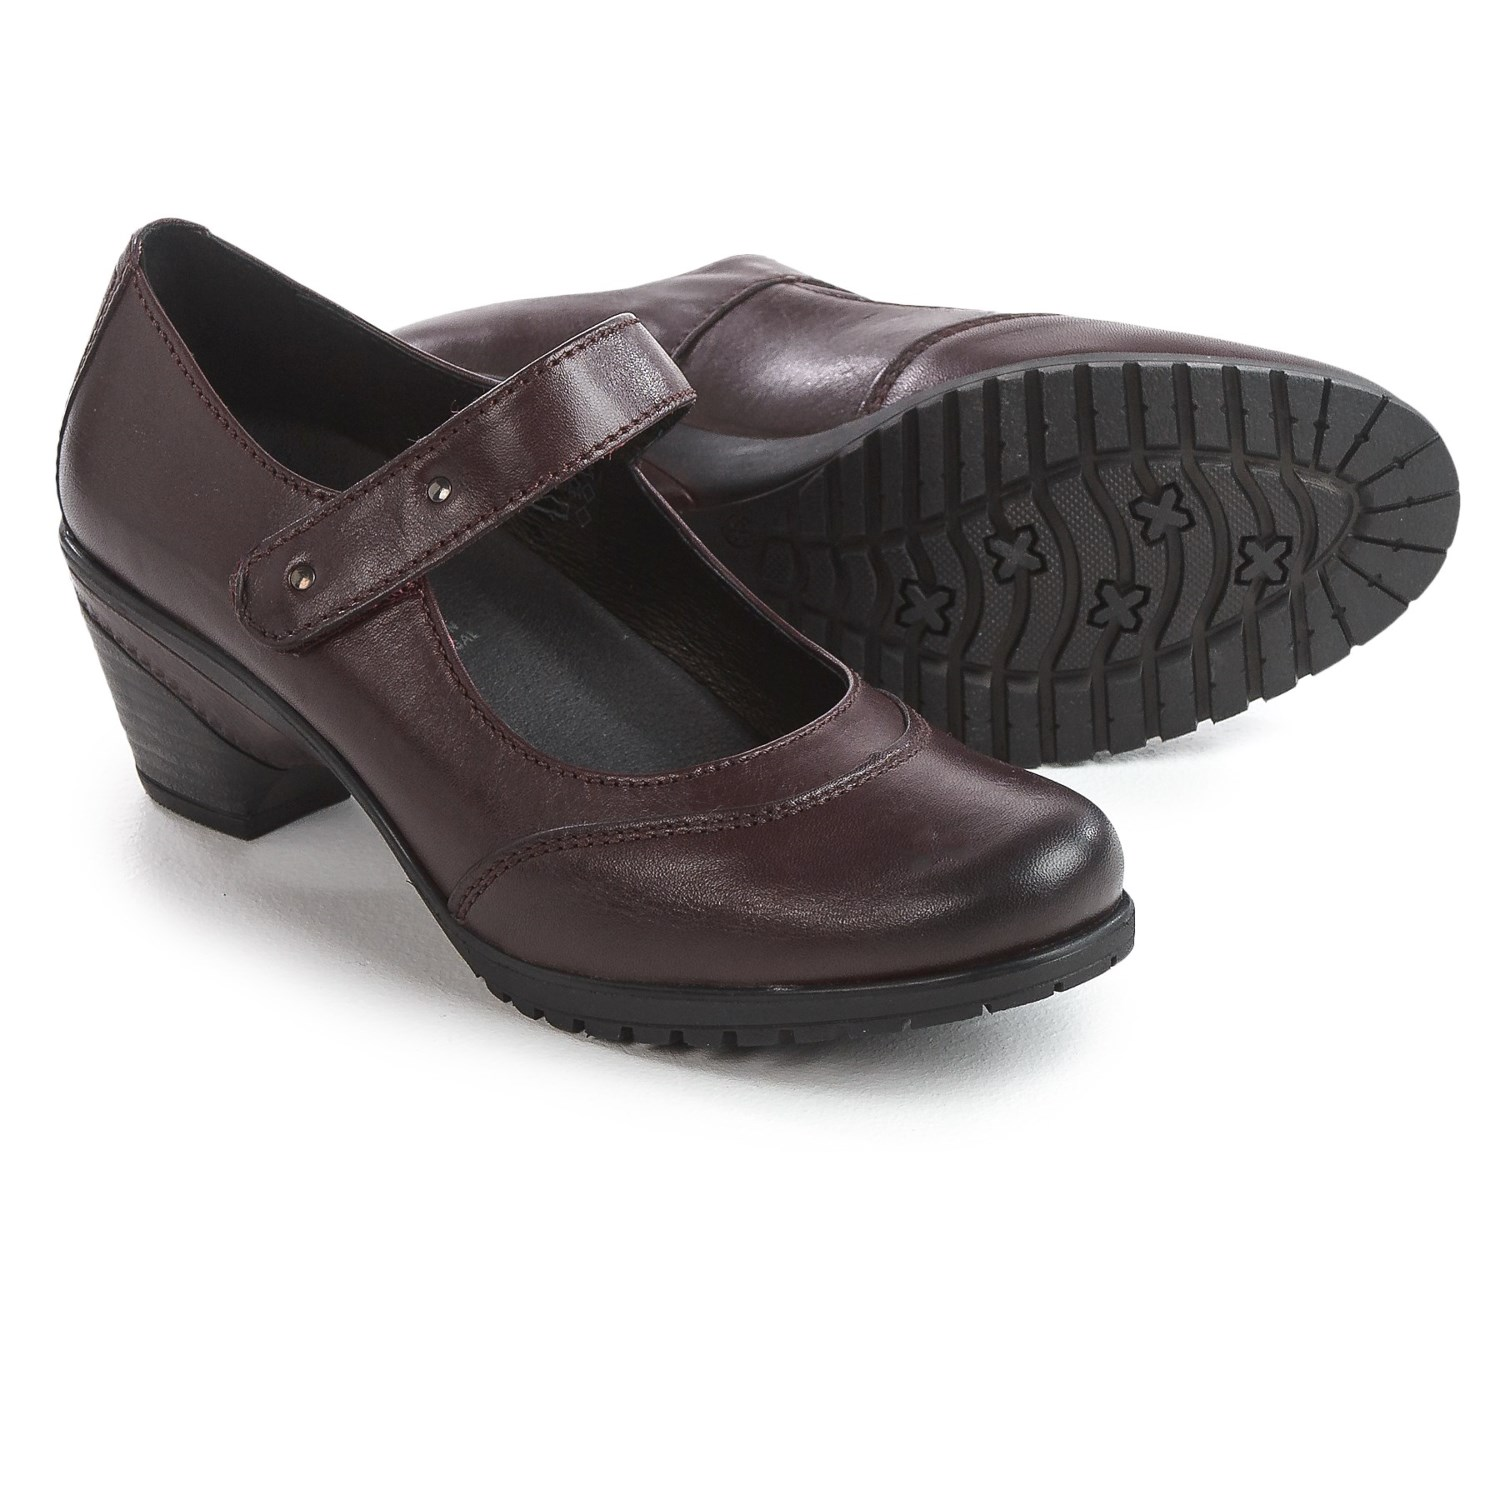 Spring Step Artyom Mary Jane Shoes - Leather (For Women) in Bordeaux